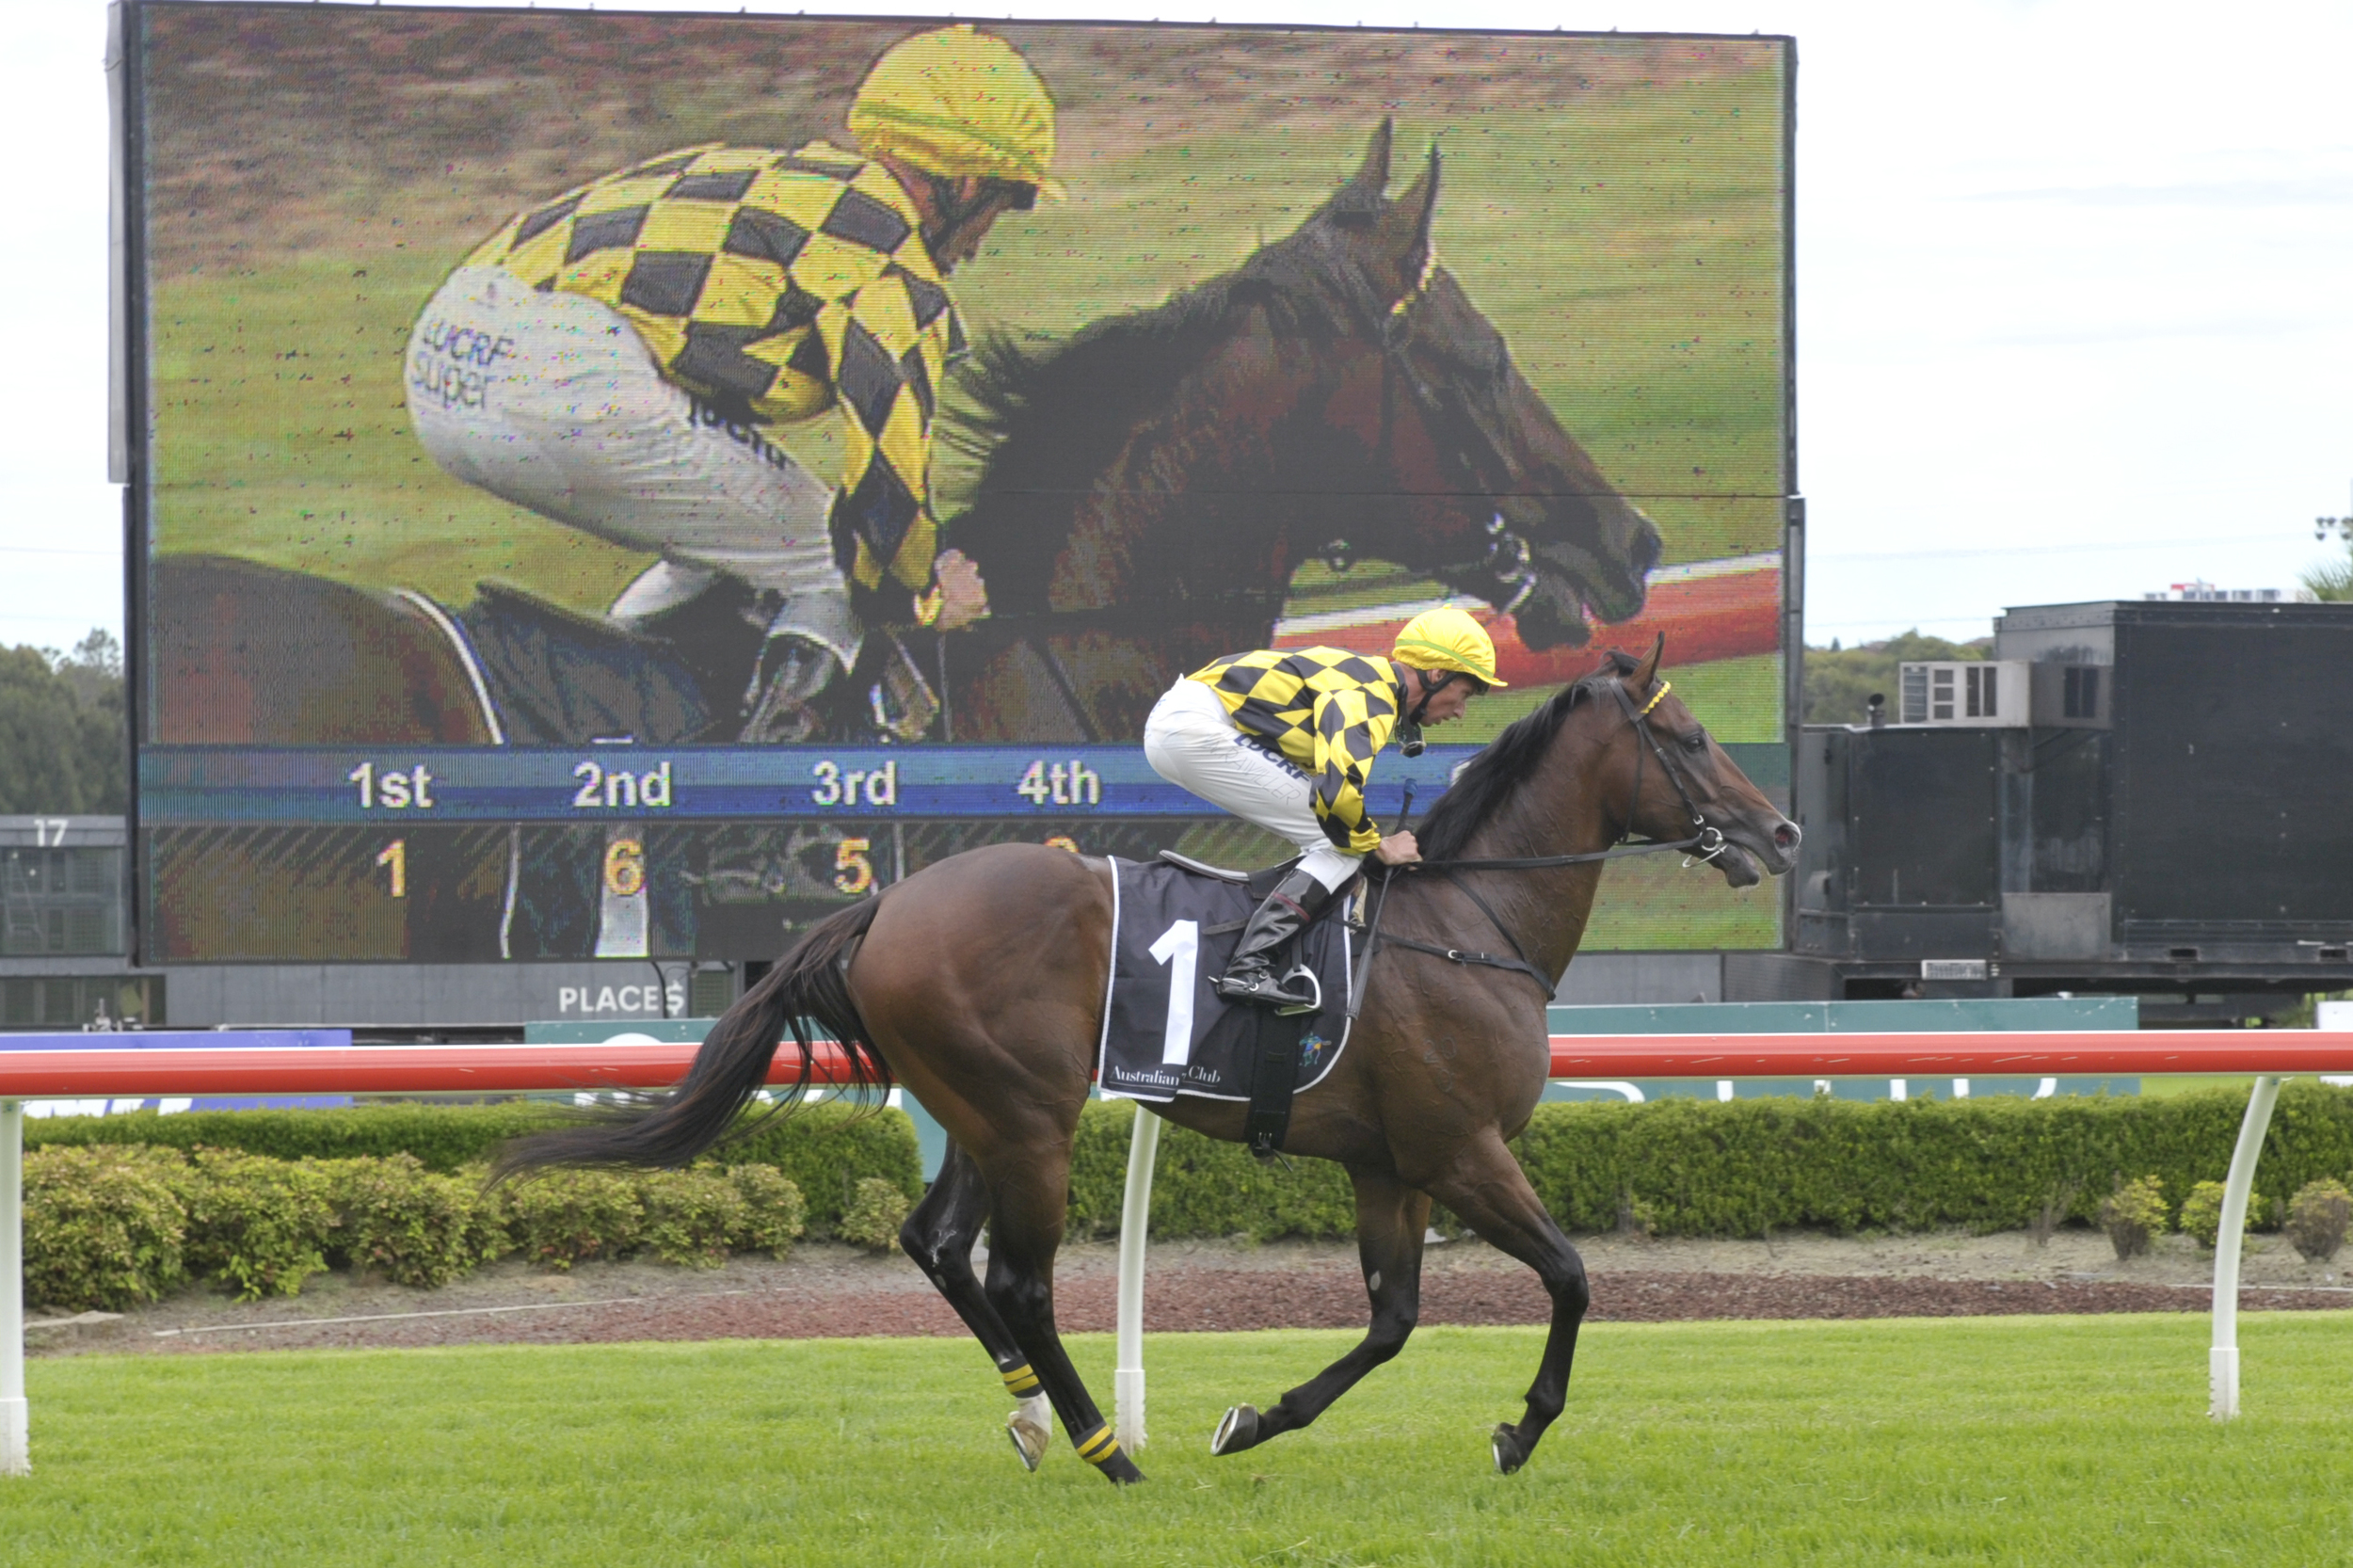 Havana returns to scale after dominant 4 length win at Canterbury on February 12 for Paul Messara & Nash Rawillar